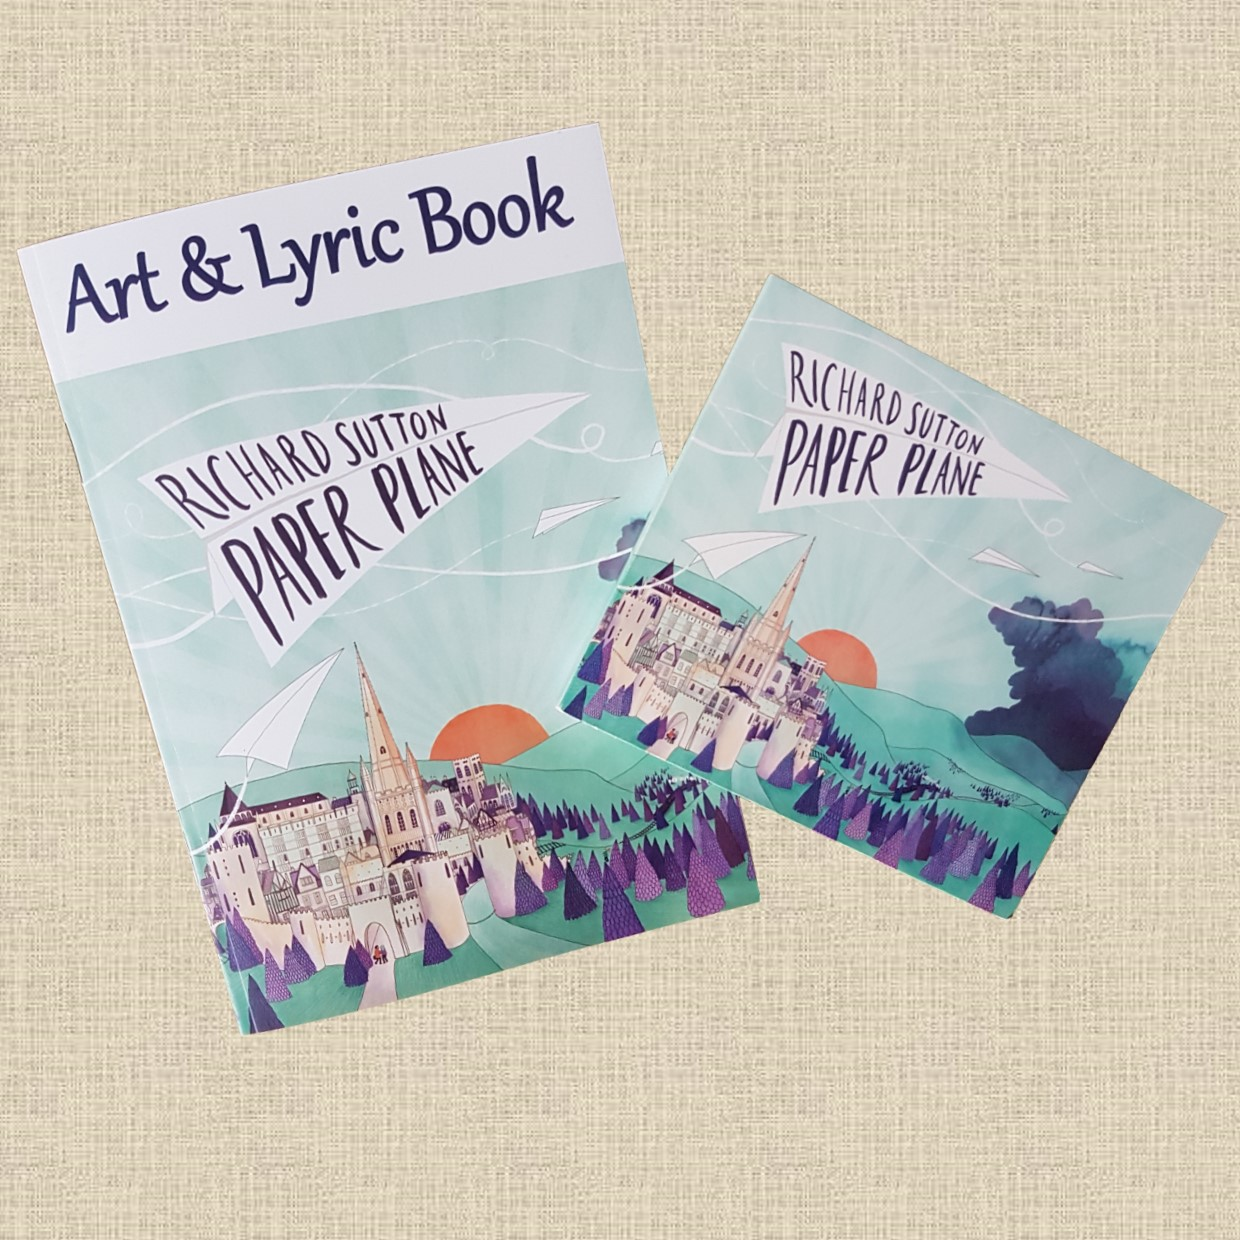 Paper Plane CD + Art & Lyric Book - RICHARD SUTTON